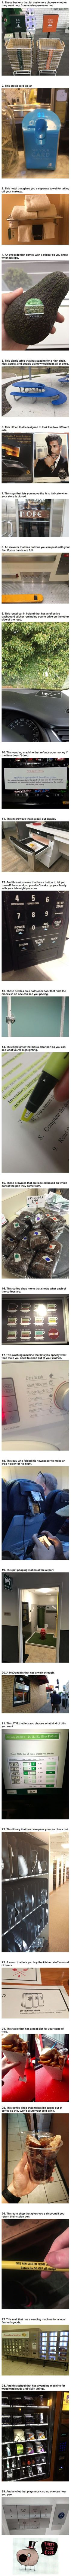 "29 Things That Will Make You Say ""Damn, That's So Smart"" - 9GAG:"